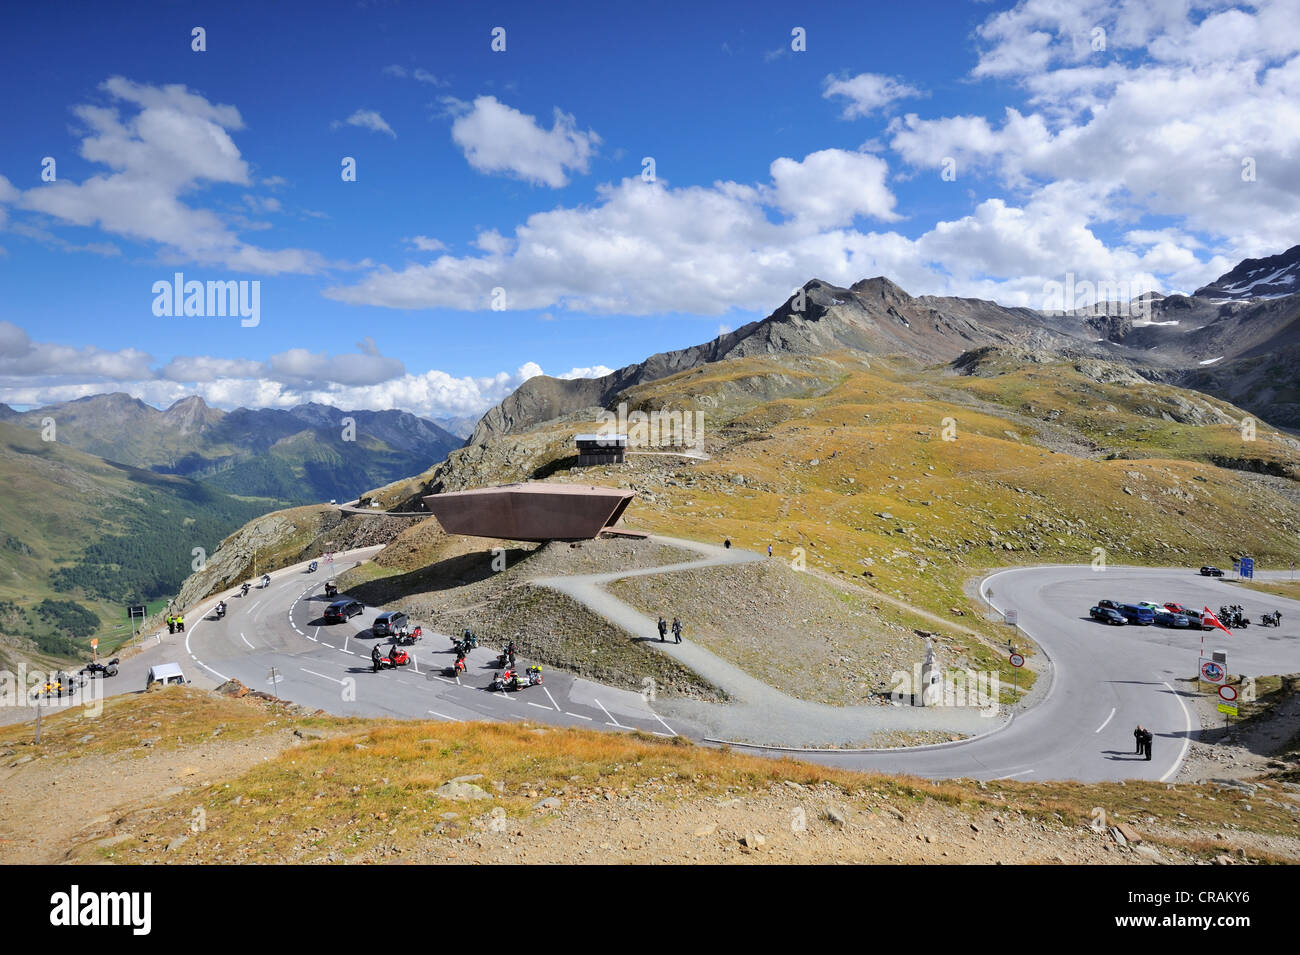 Pass Museum at the crest of Timmelsjoch High Alpine Road, 2509m, Oetztal Valley, Tyrol, Austria, Europe - Stock Image